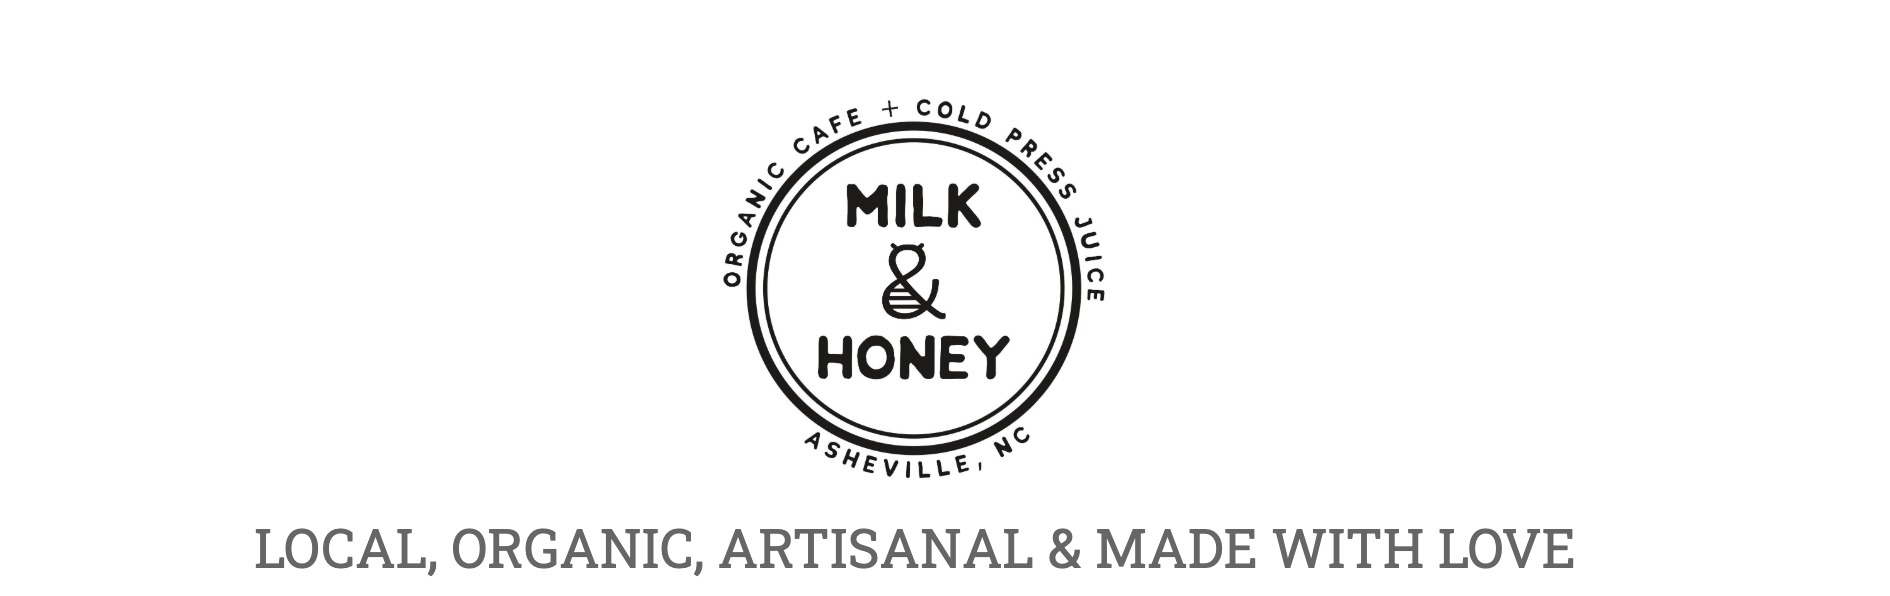 Milk & Honey Asheville, NC